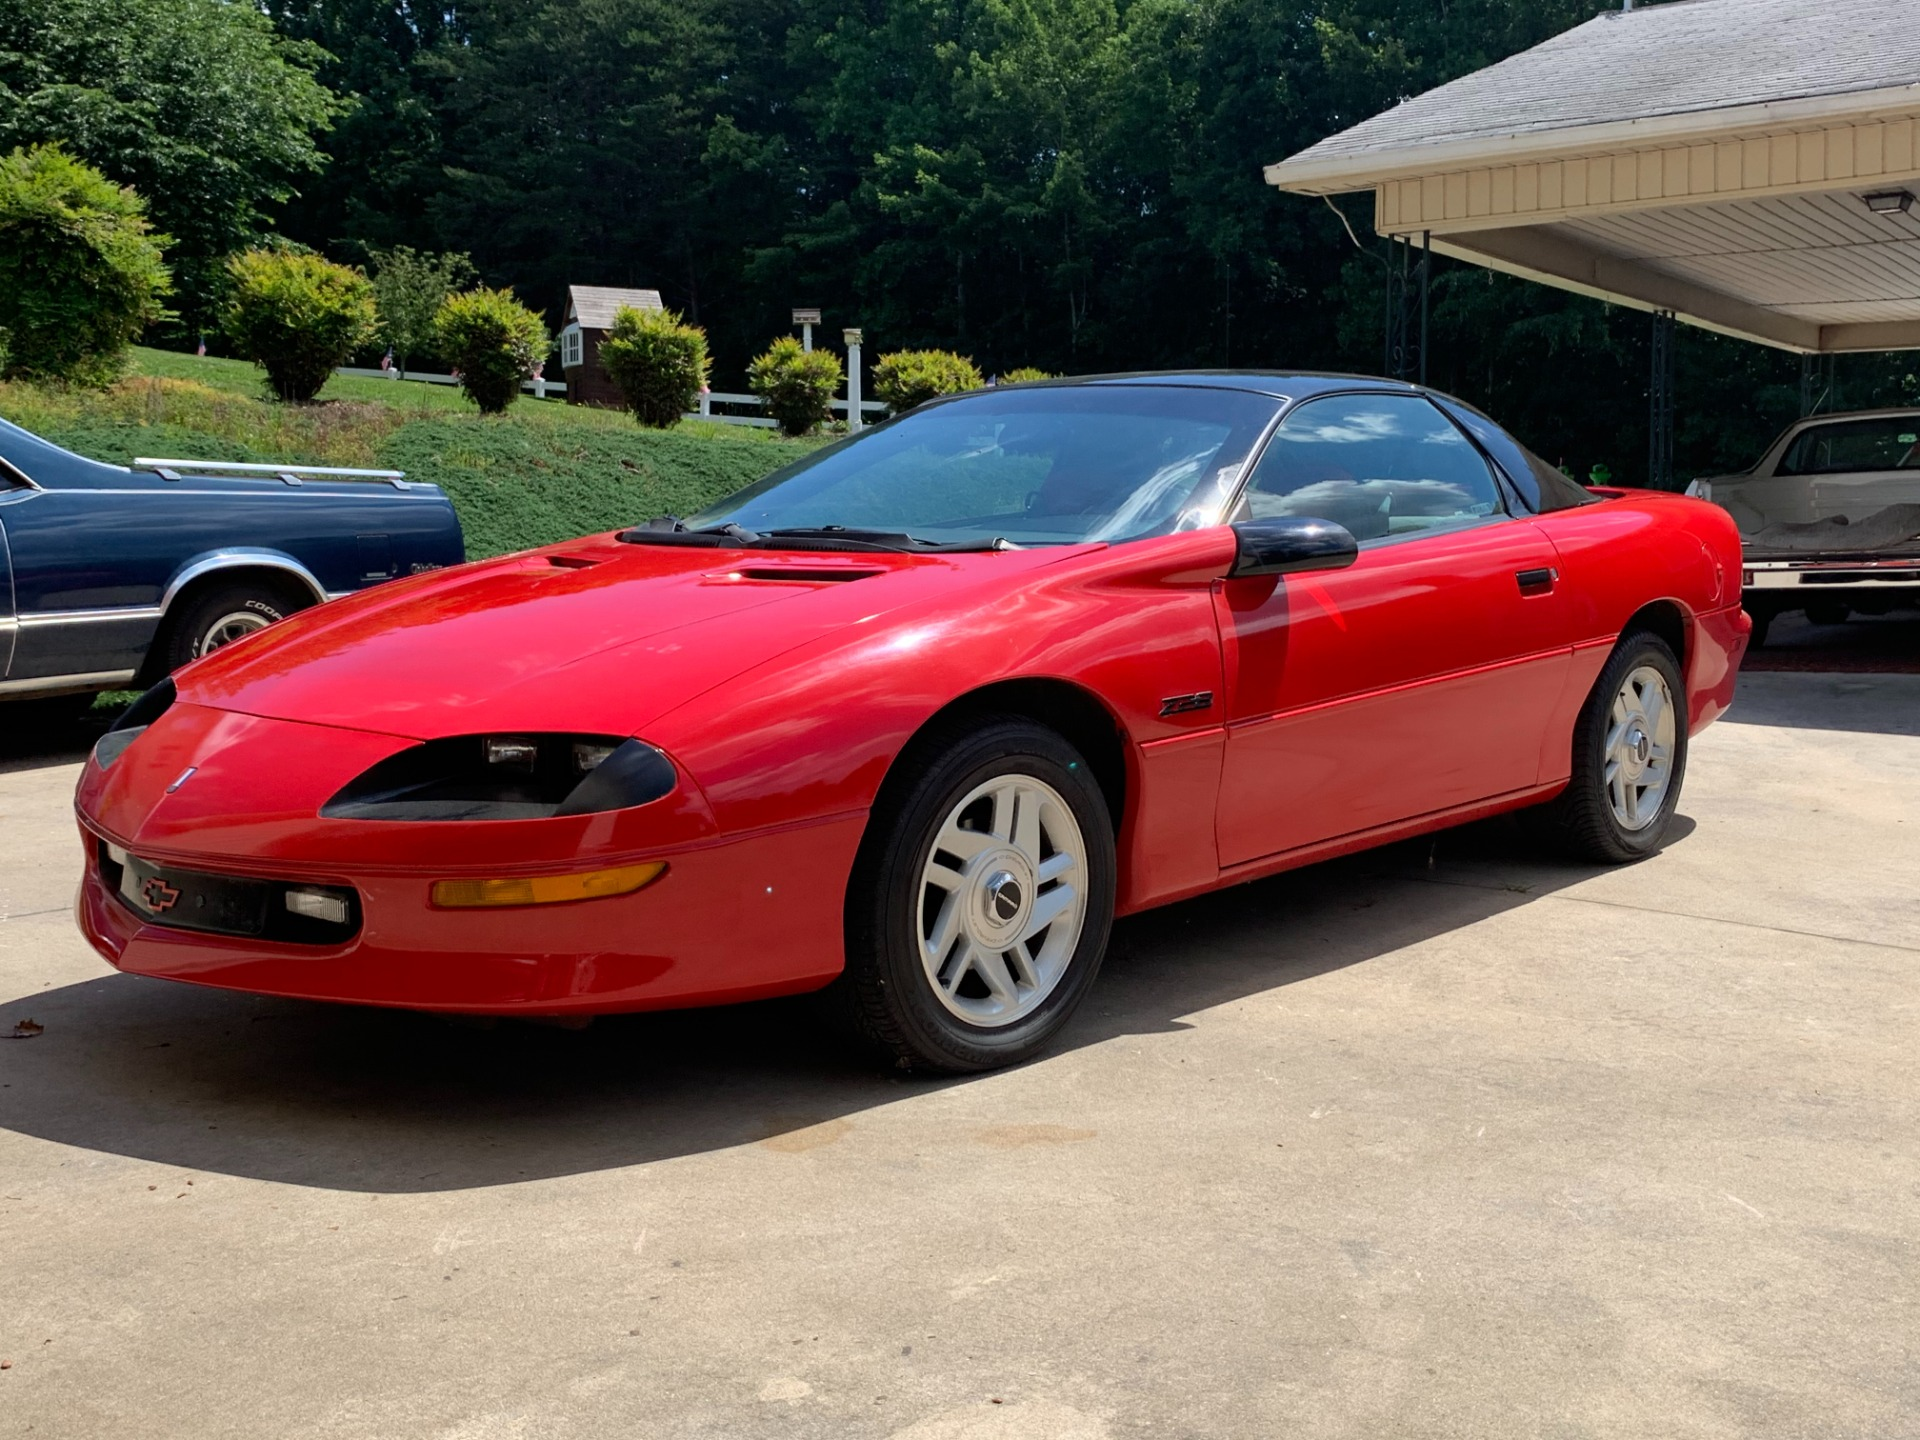 New 1994 Chevrolet Camaro Z28  170 , For Sale $10500, Call Us: (704) 996-3735